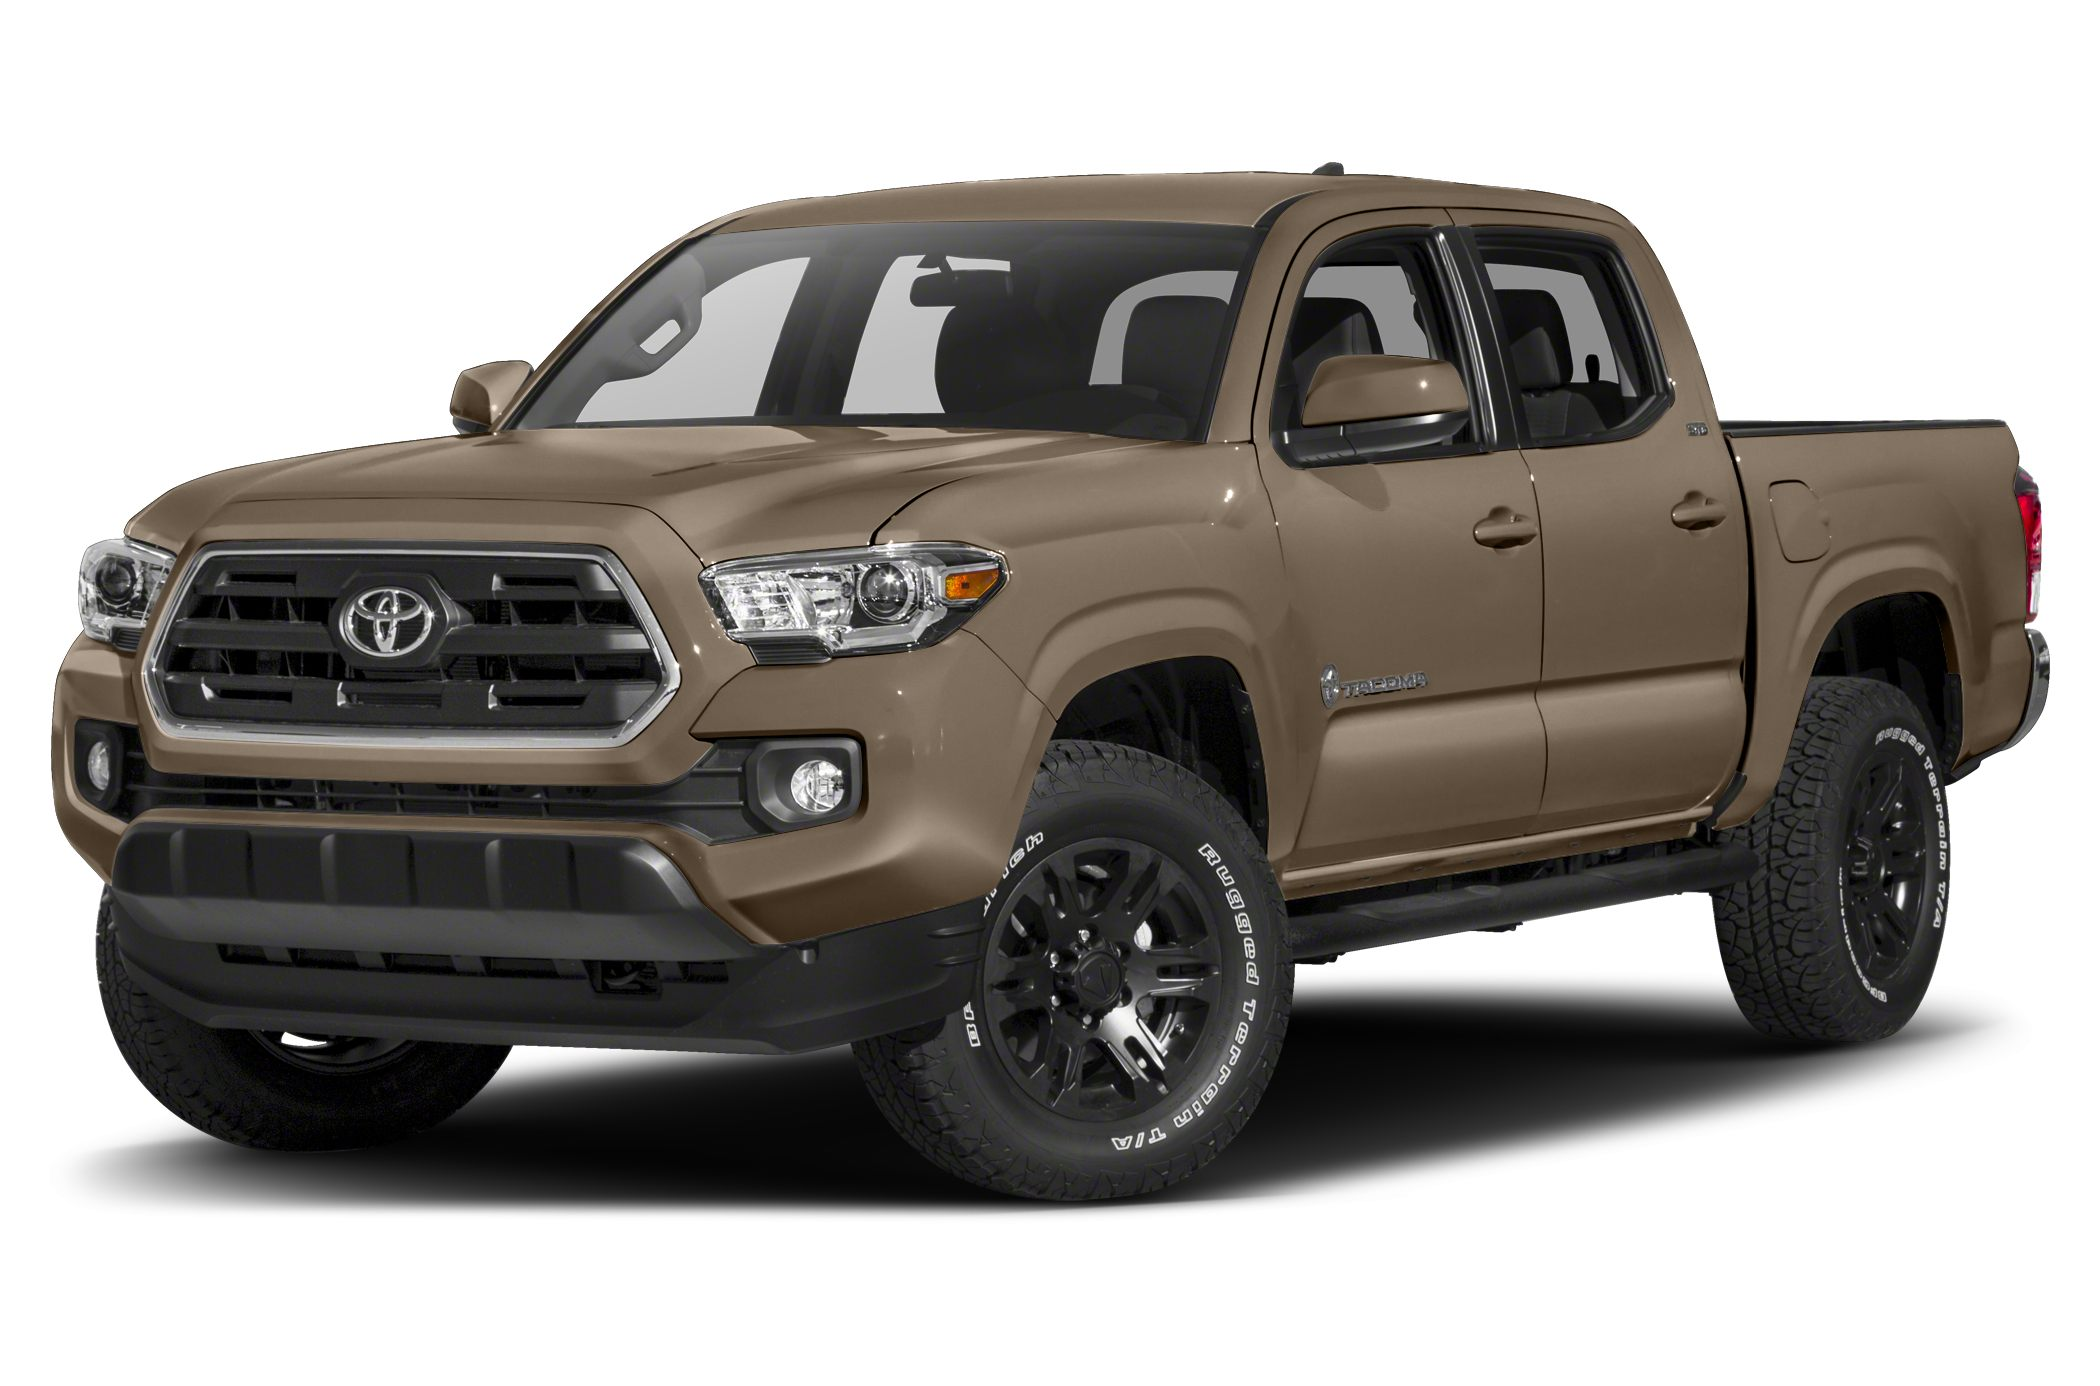 2017 Toyota Tacoma SR5 SR5 trim FUEL EFFICIENT 23 MPG Hwy18 MPG City CD Player Bluetooth Alum